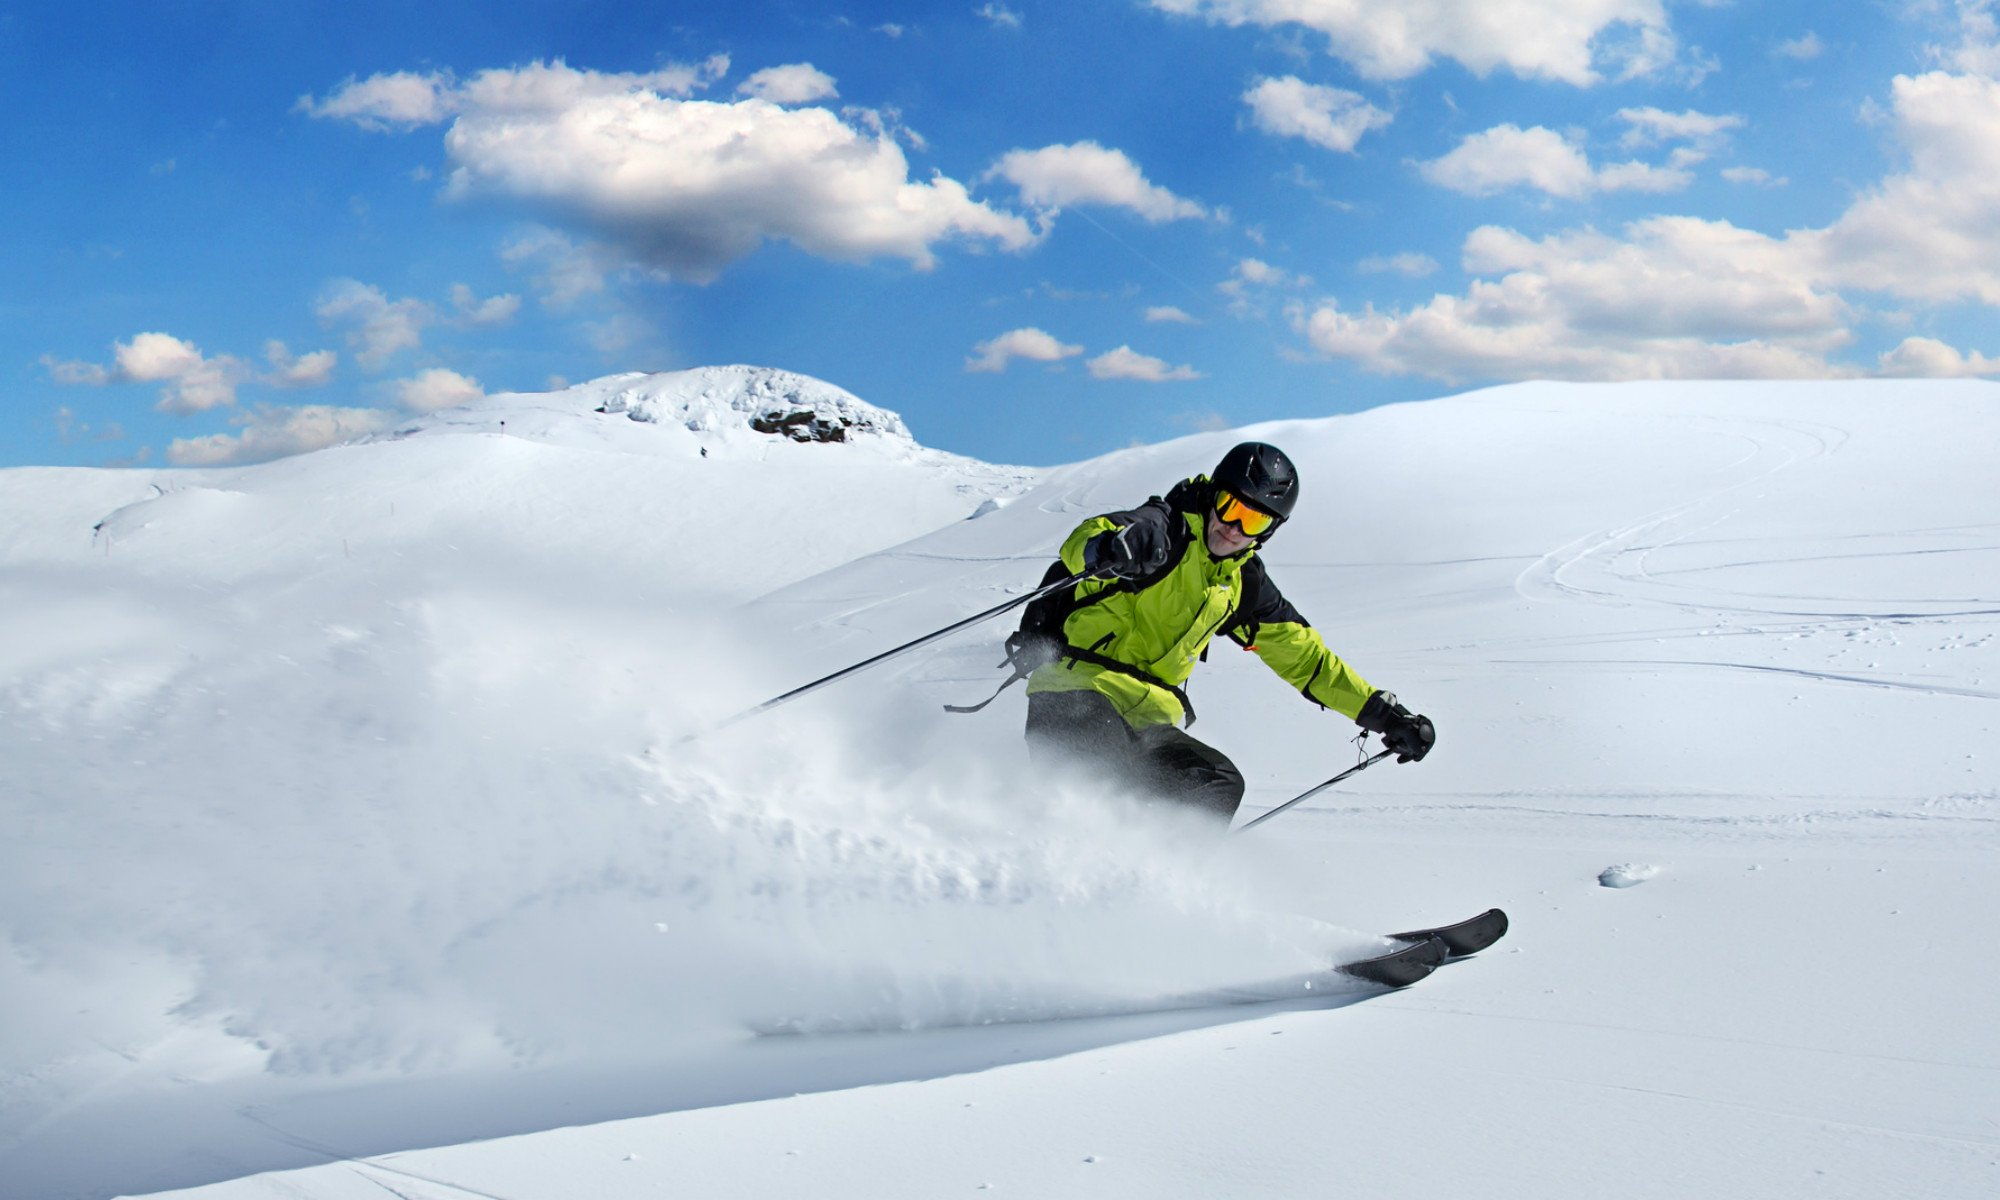 A Skier freeriding in high-lying powder snow.